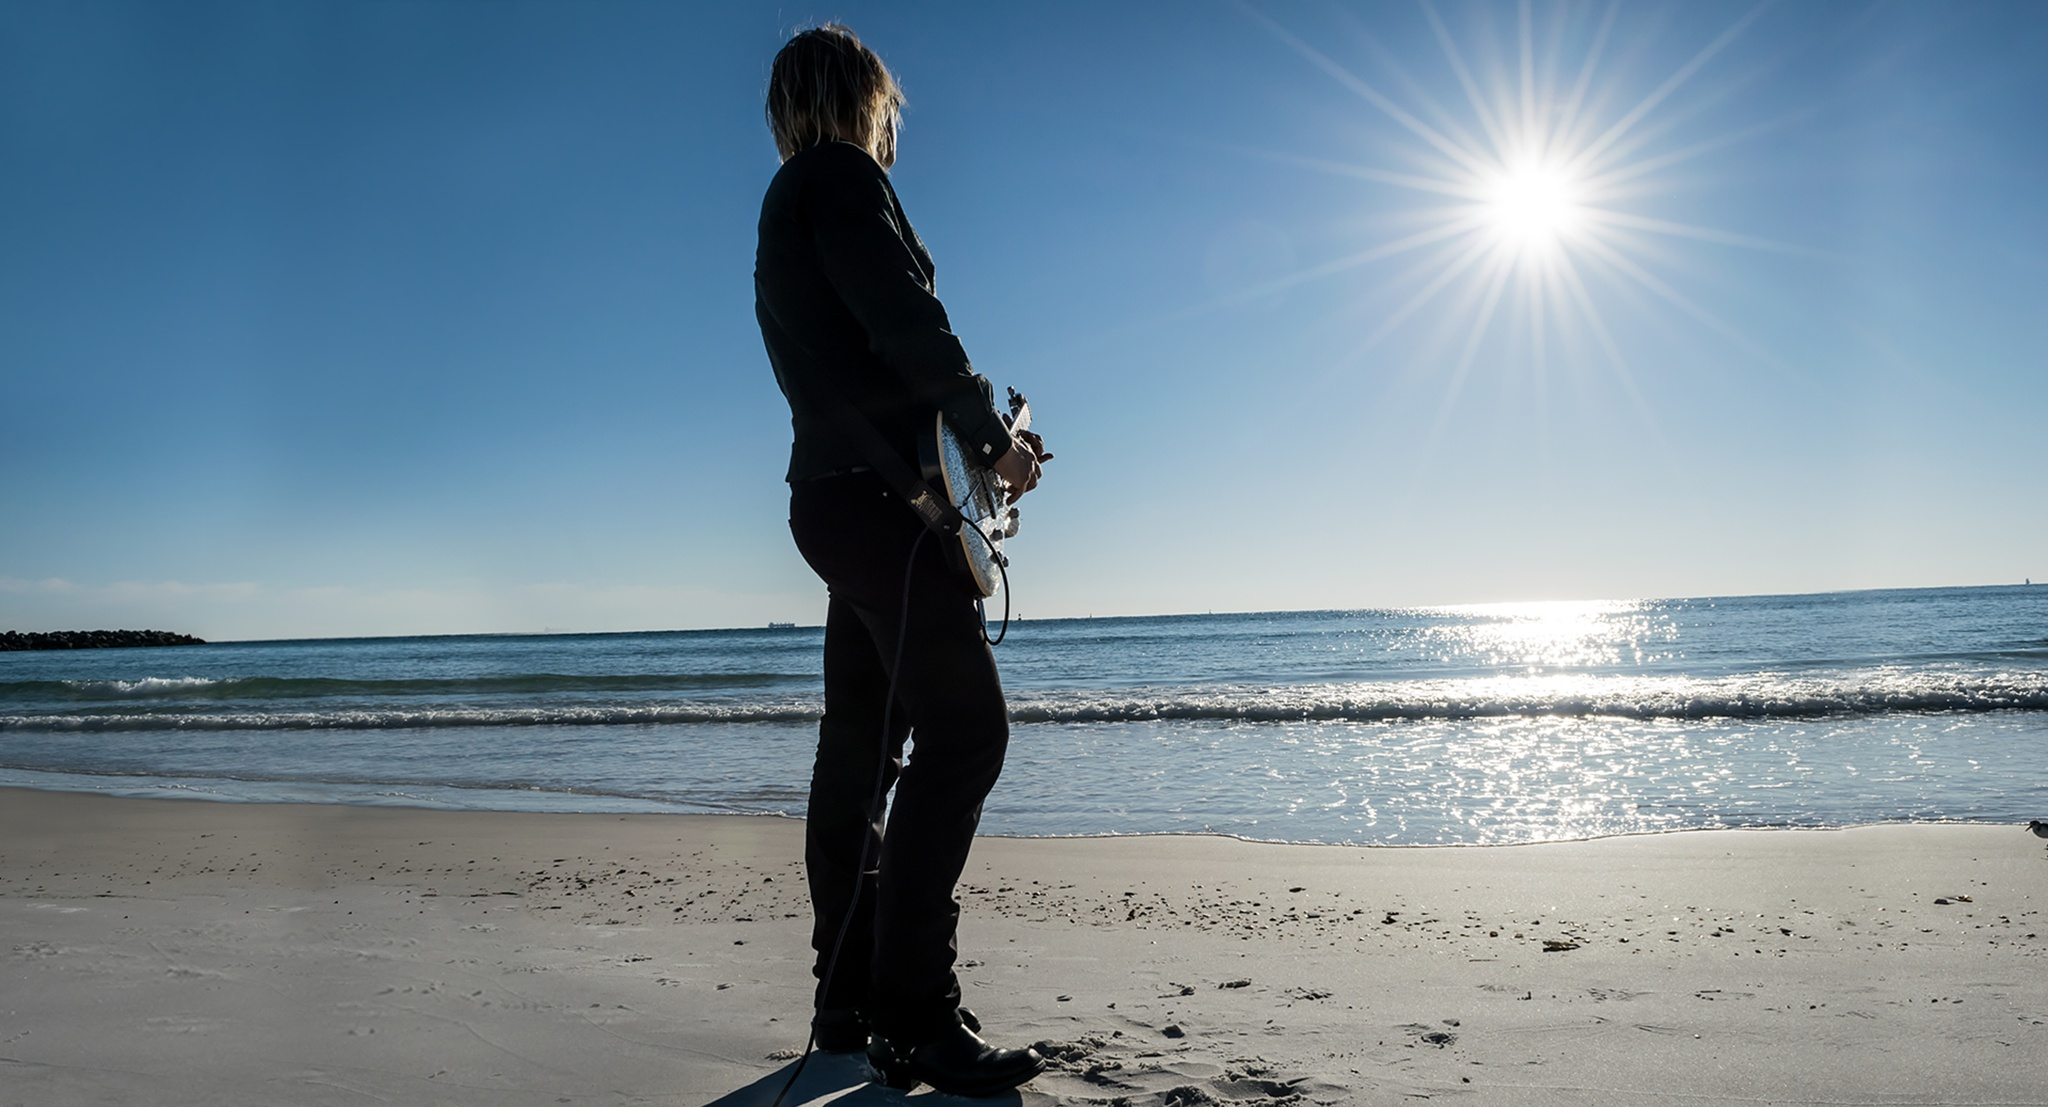 A Man With His Guitar On The Beach by TheHilaryClark